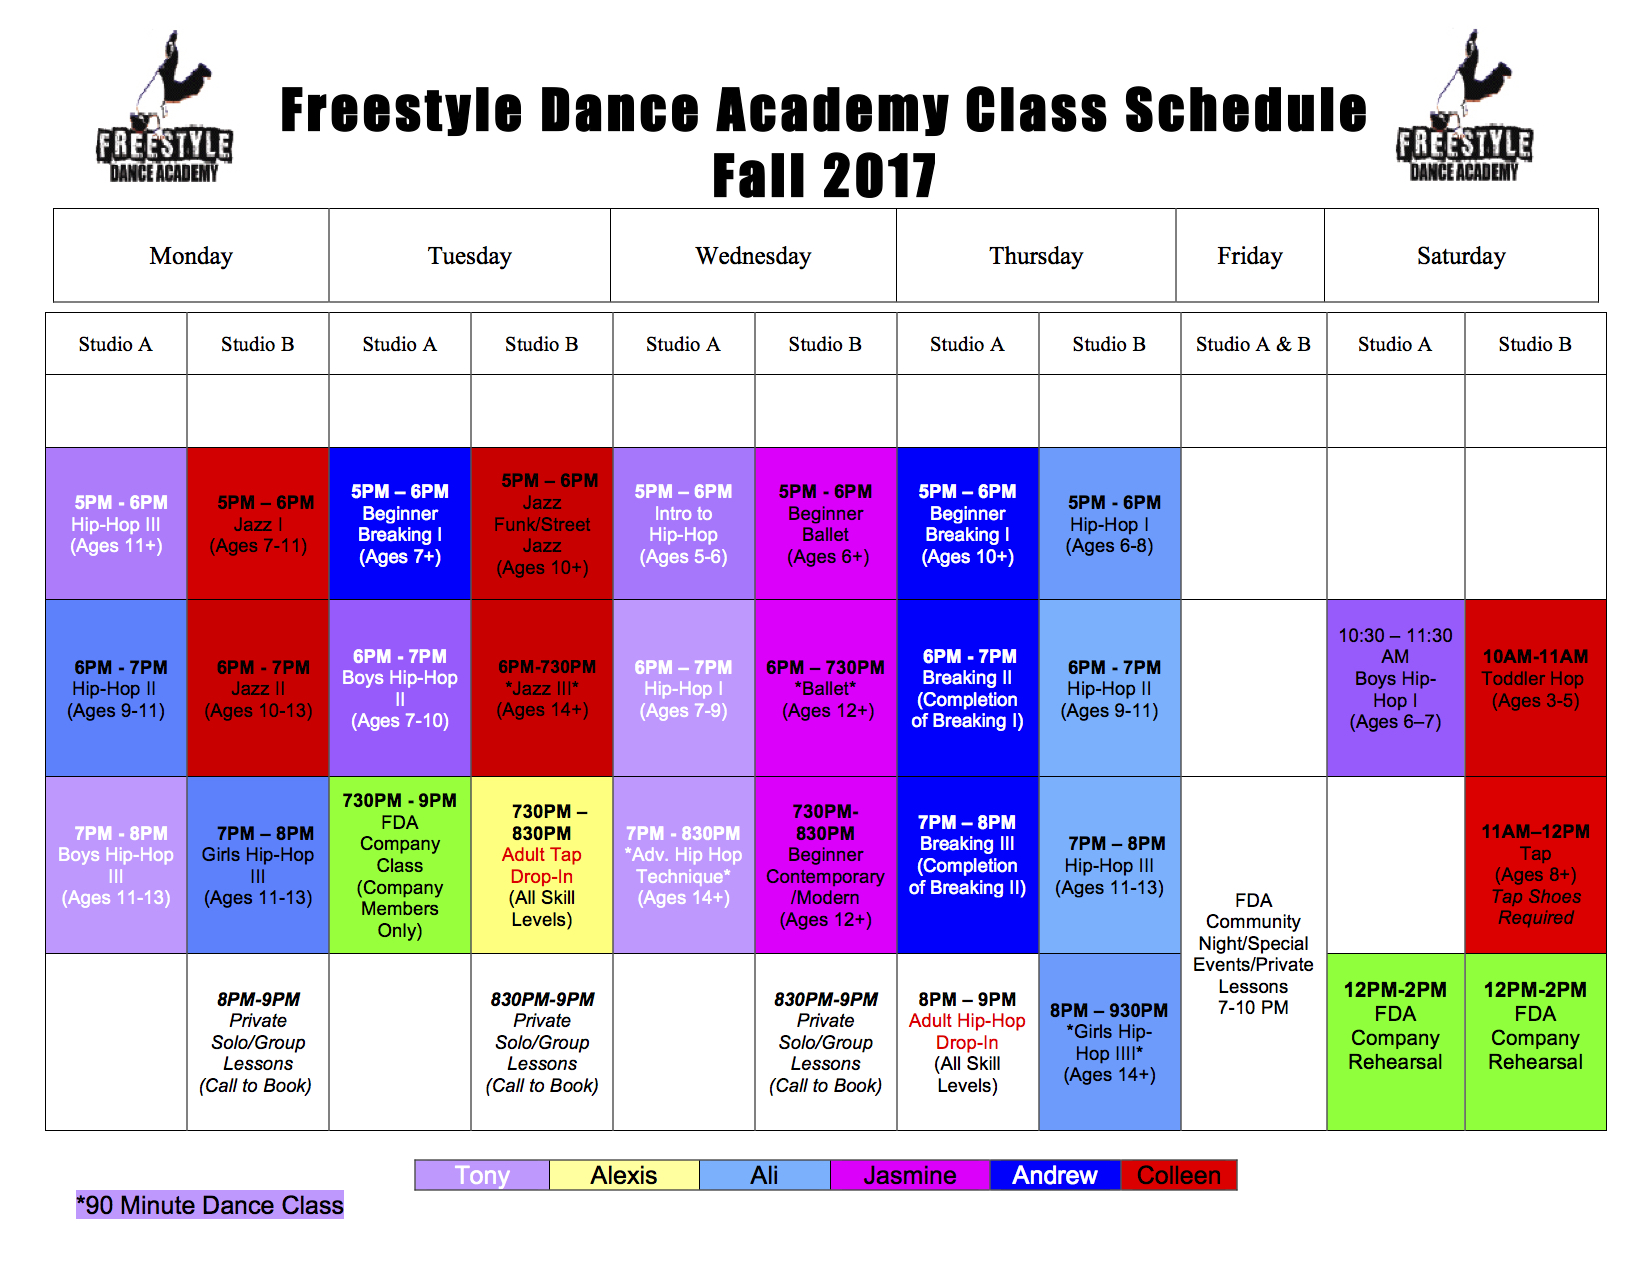 Fall 2017, dance, dance class, dance studio, dance lessons, dancer, Freestyle Dance Academy, hip-hop, breakdance, jazz, tap, ballet, modern, Best of Bucks, Warrington, Chalfont, Doylestown, Lansdale